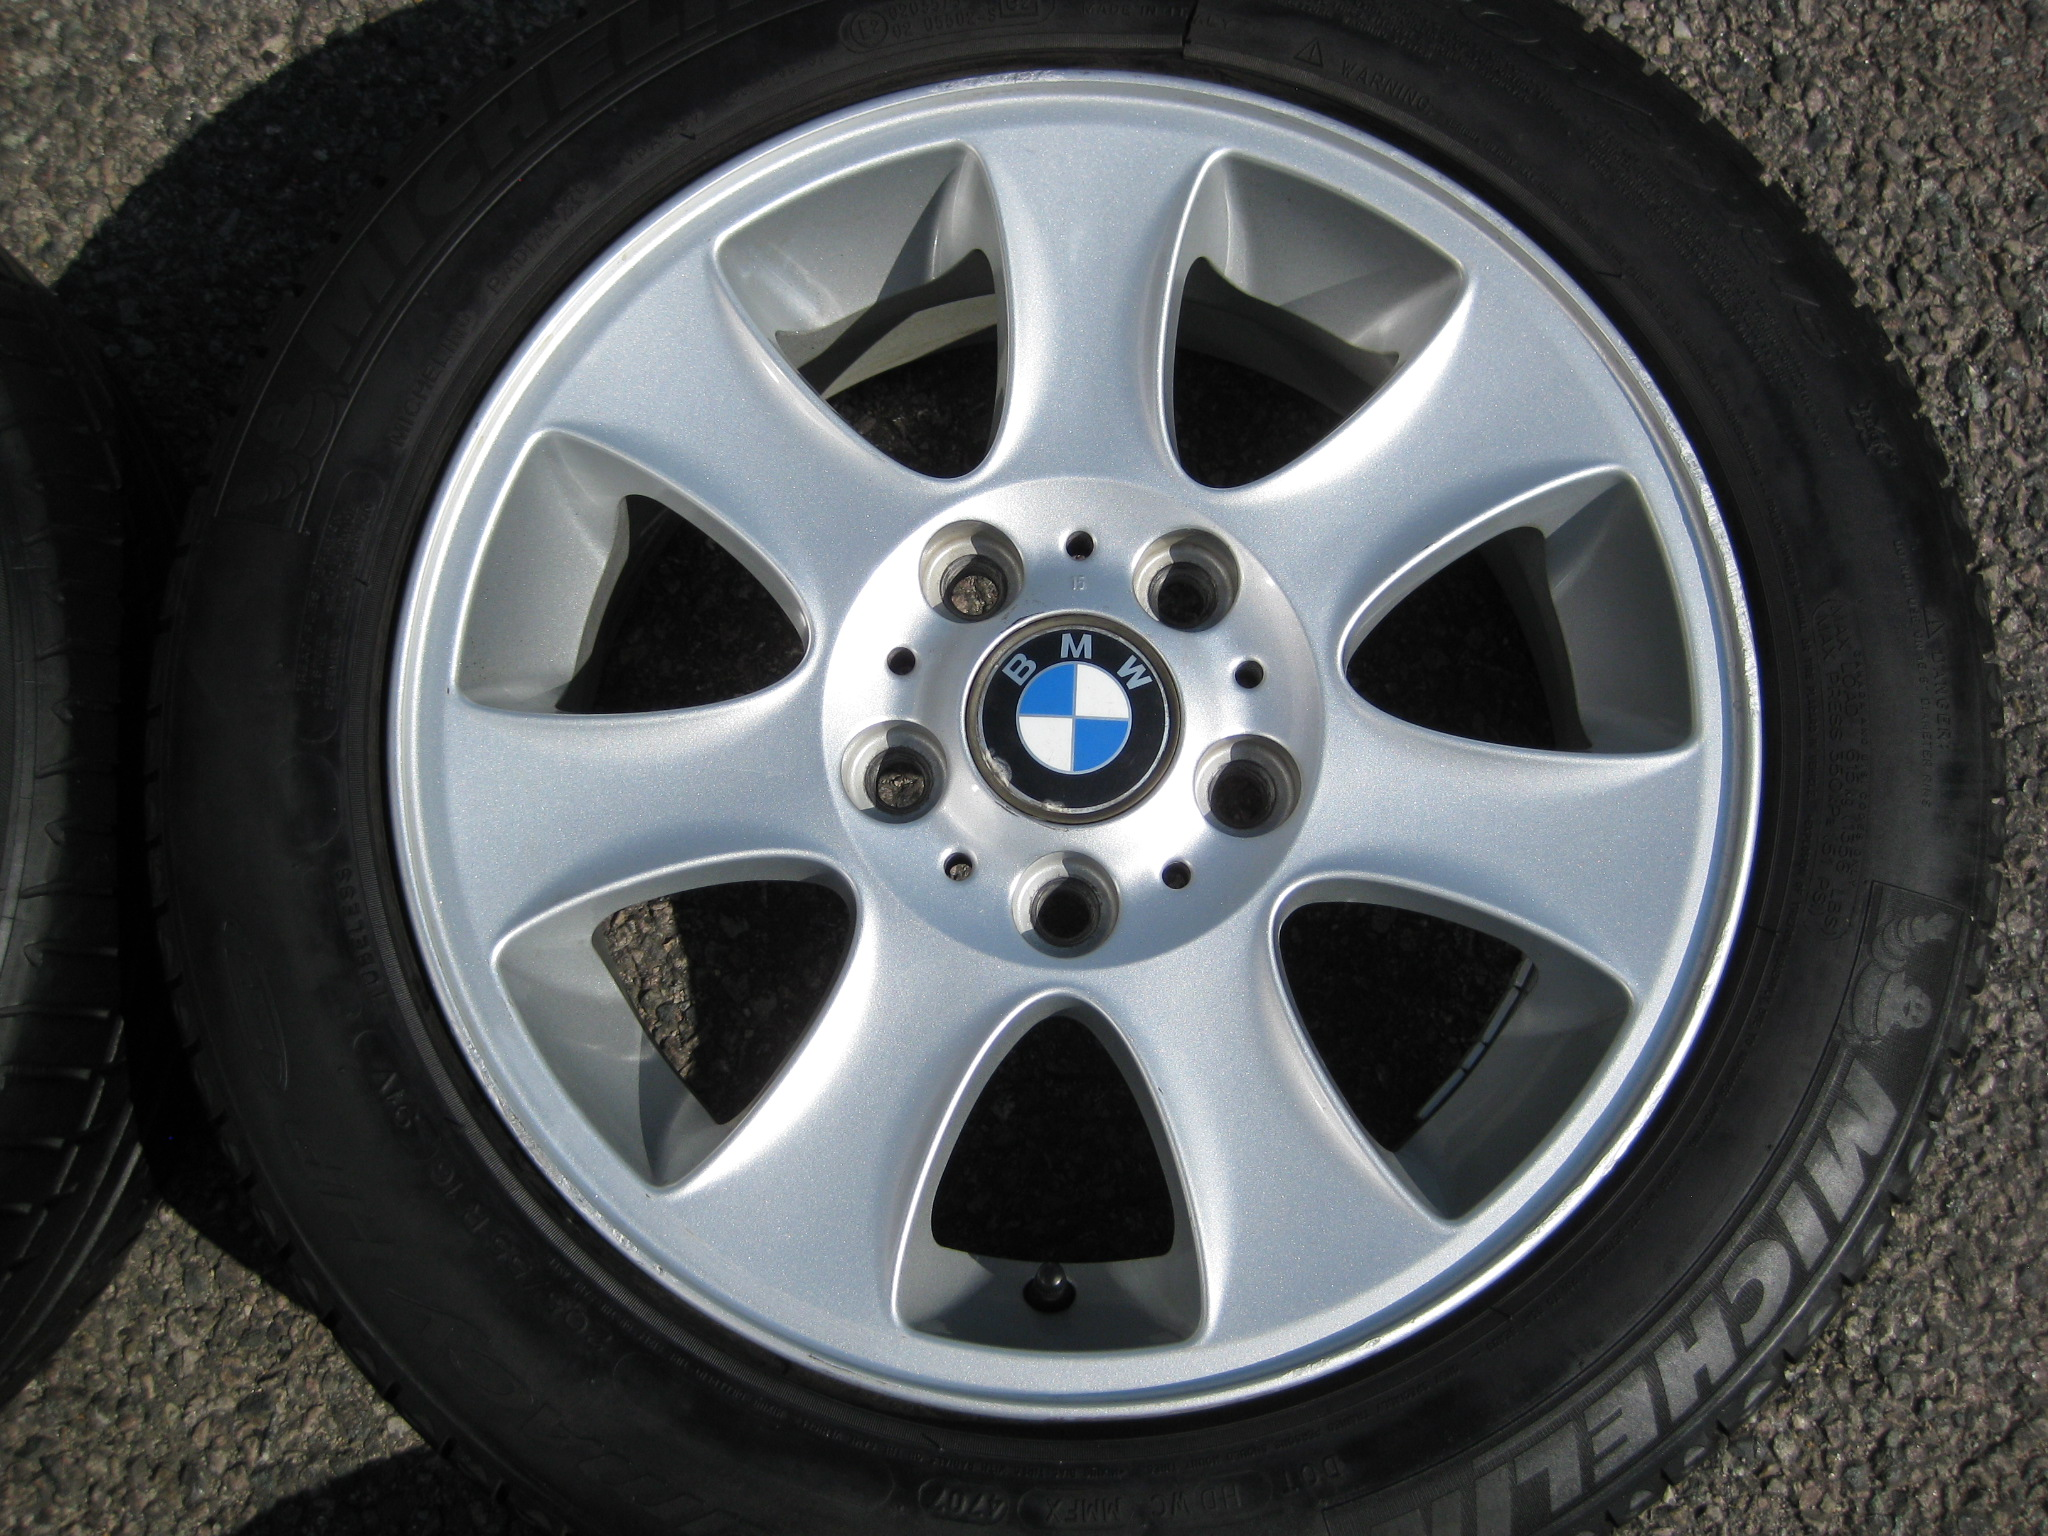 "USED 16"" GENUINE STYLE 151 7 SPOKE ALLOY WHEELS, CLEAN INC VERY GOOD MICHELIN RUNFLAT TYRES"